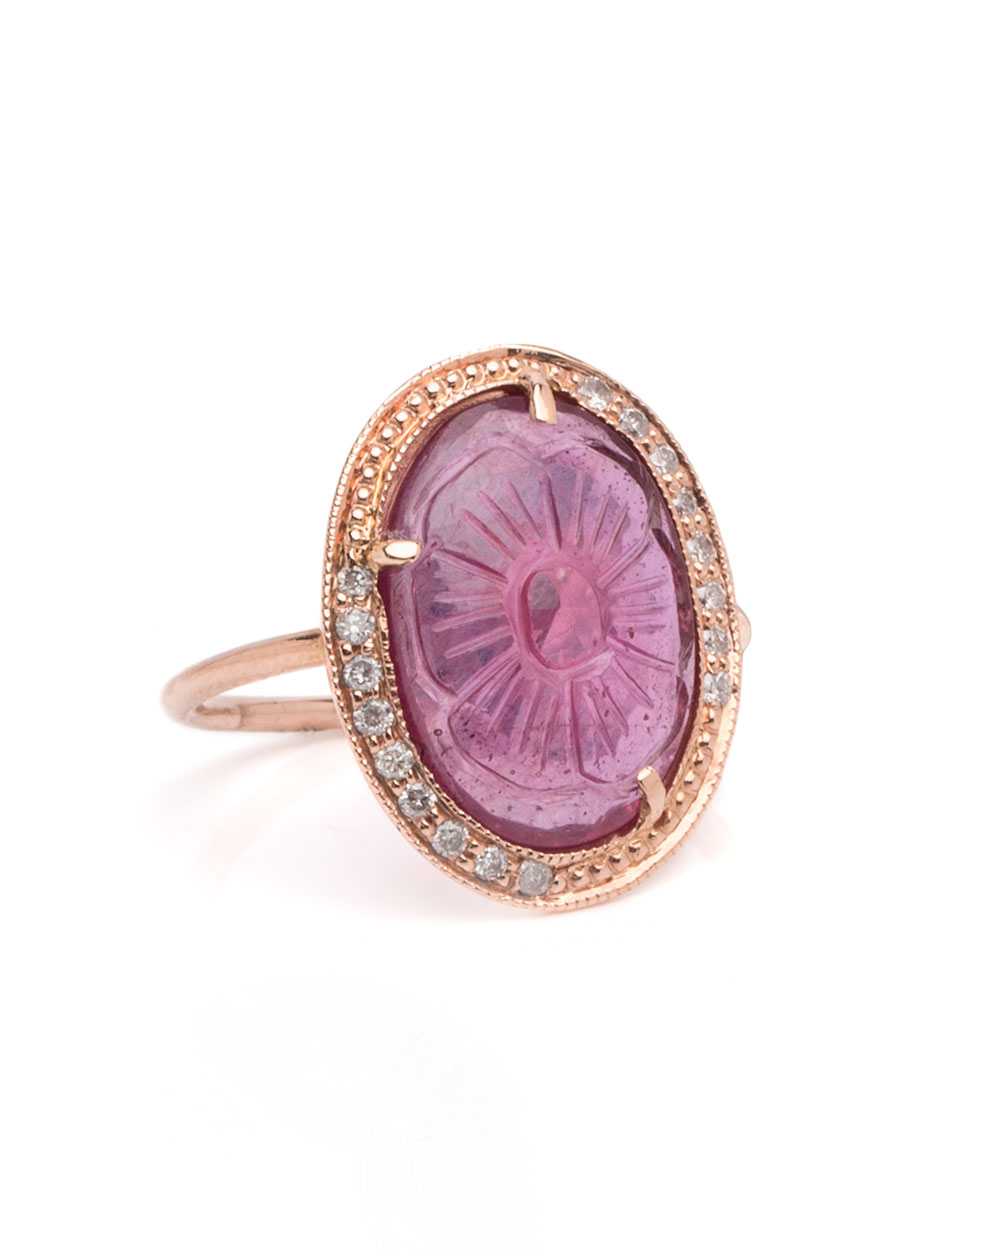 Jacquie Aiche  14K carved ruby and diamond ring, $2,750,  available at Stanley Korshak .